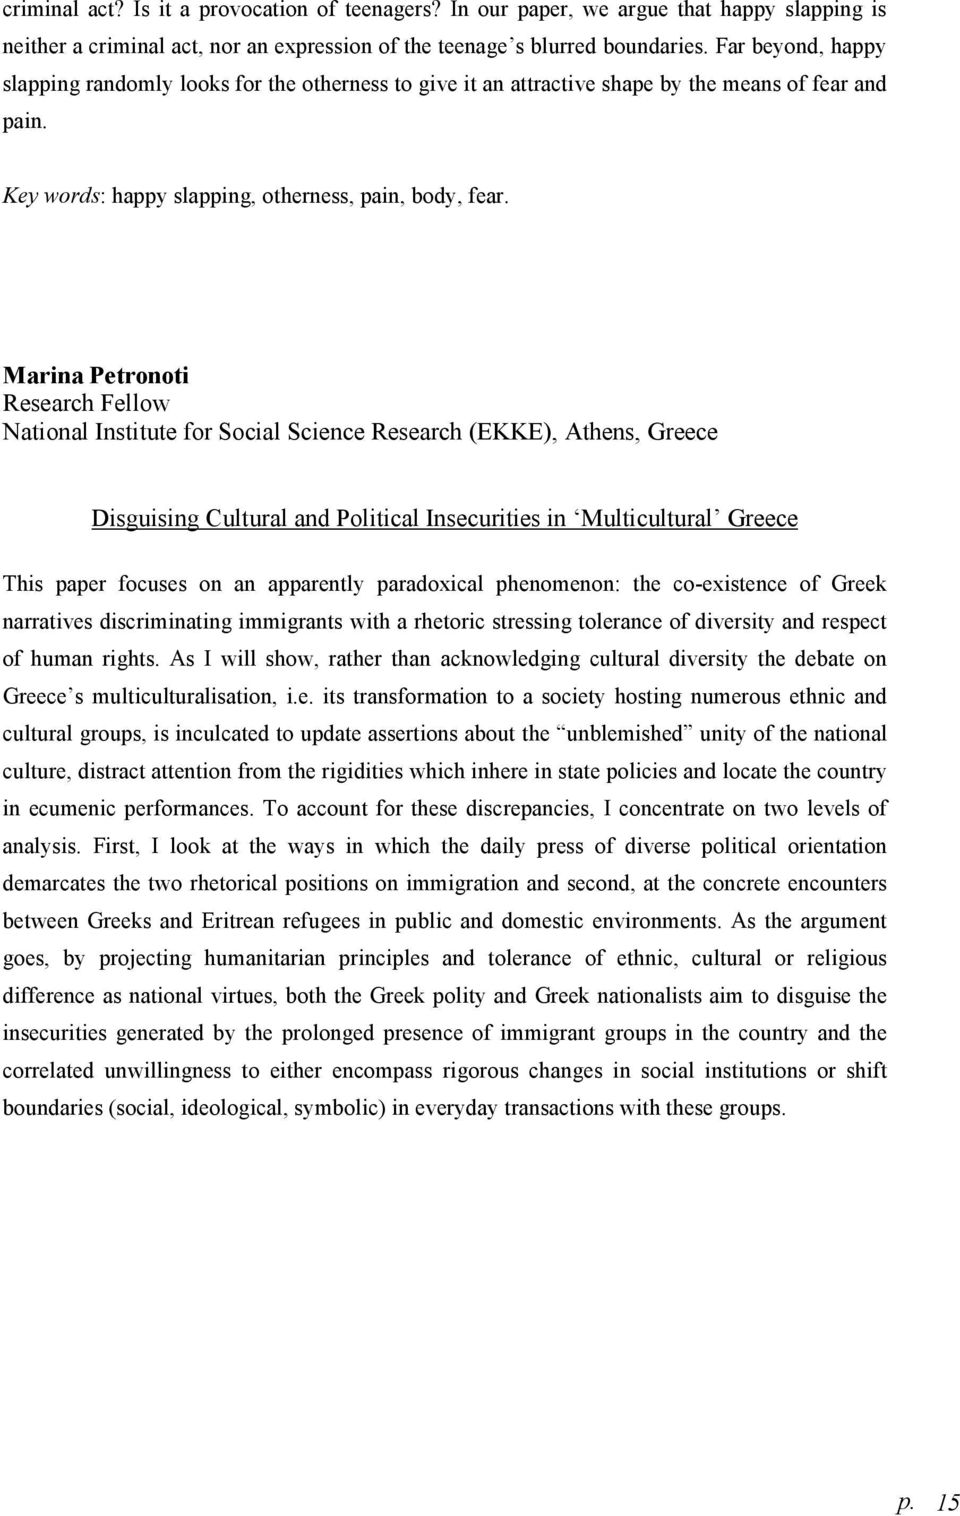 Marina Petronoti Research Fellow National Institute for Social Science Research (EKKE), Athens, Greece Disguising Cultural and Political Insecurities in Multicultural Greece This paper focuses on an